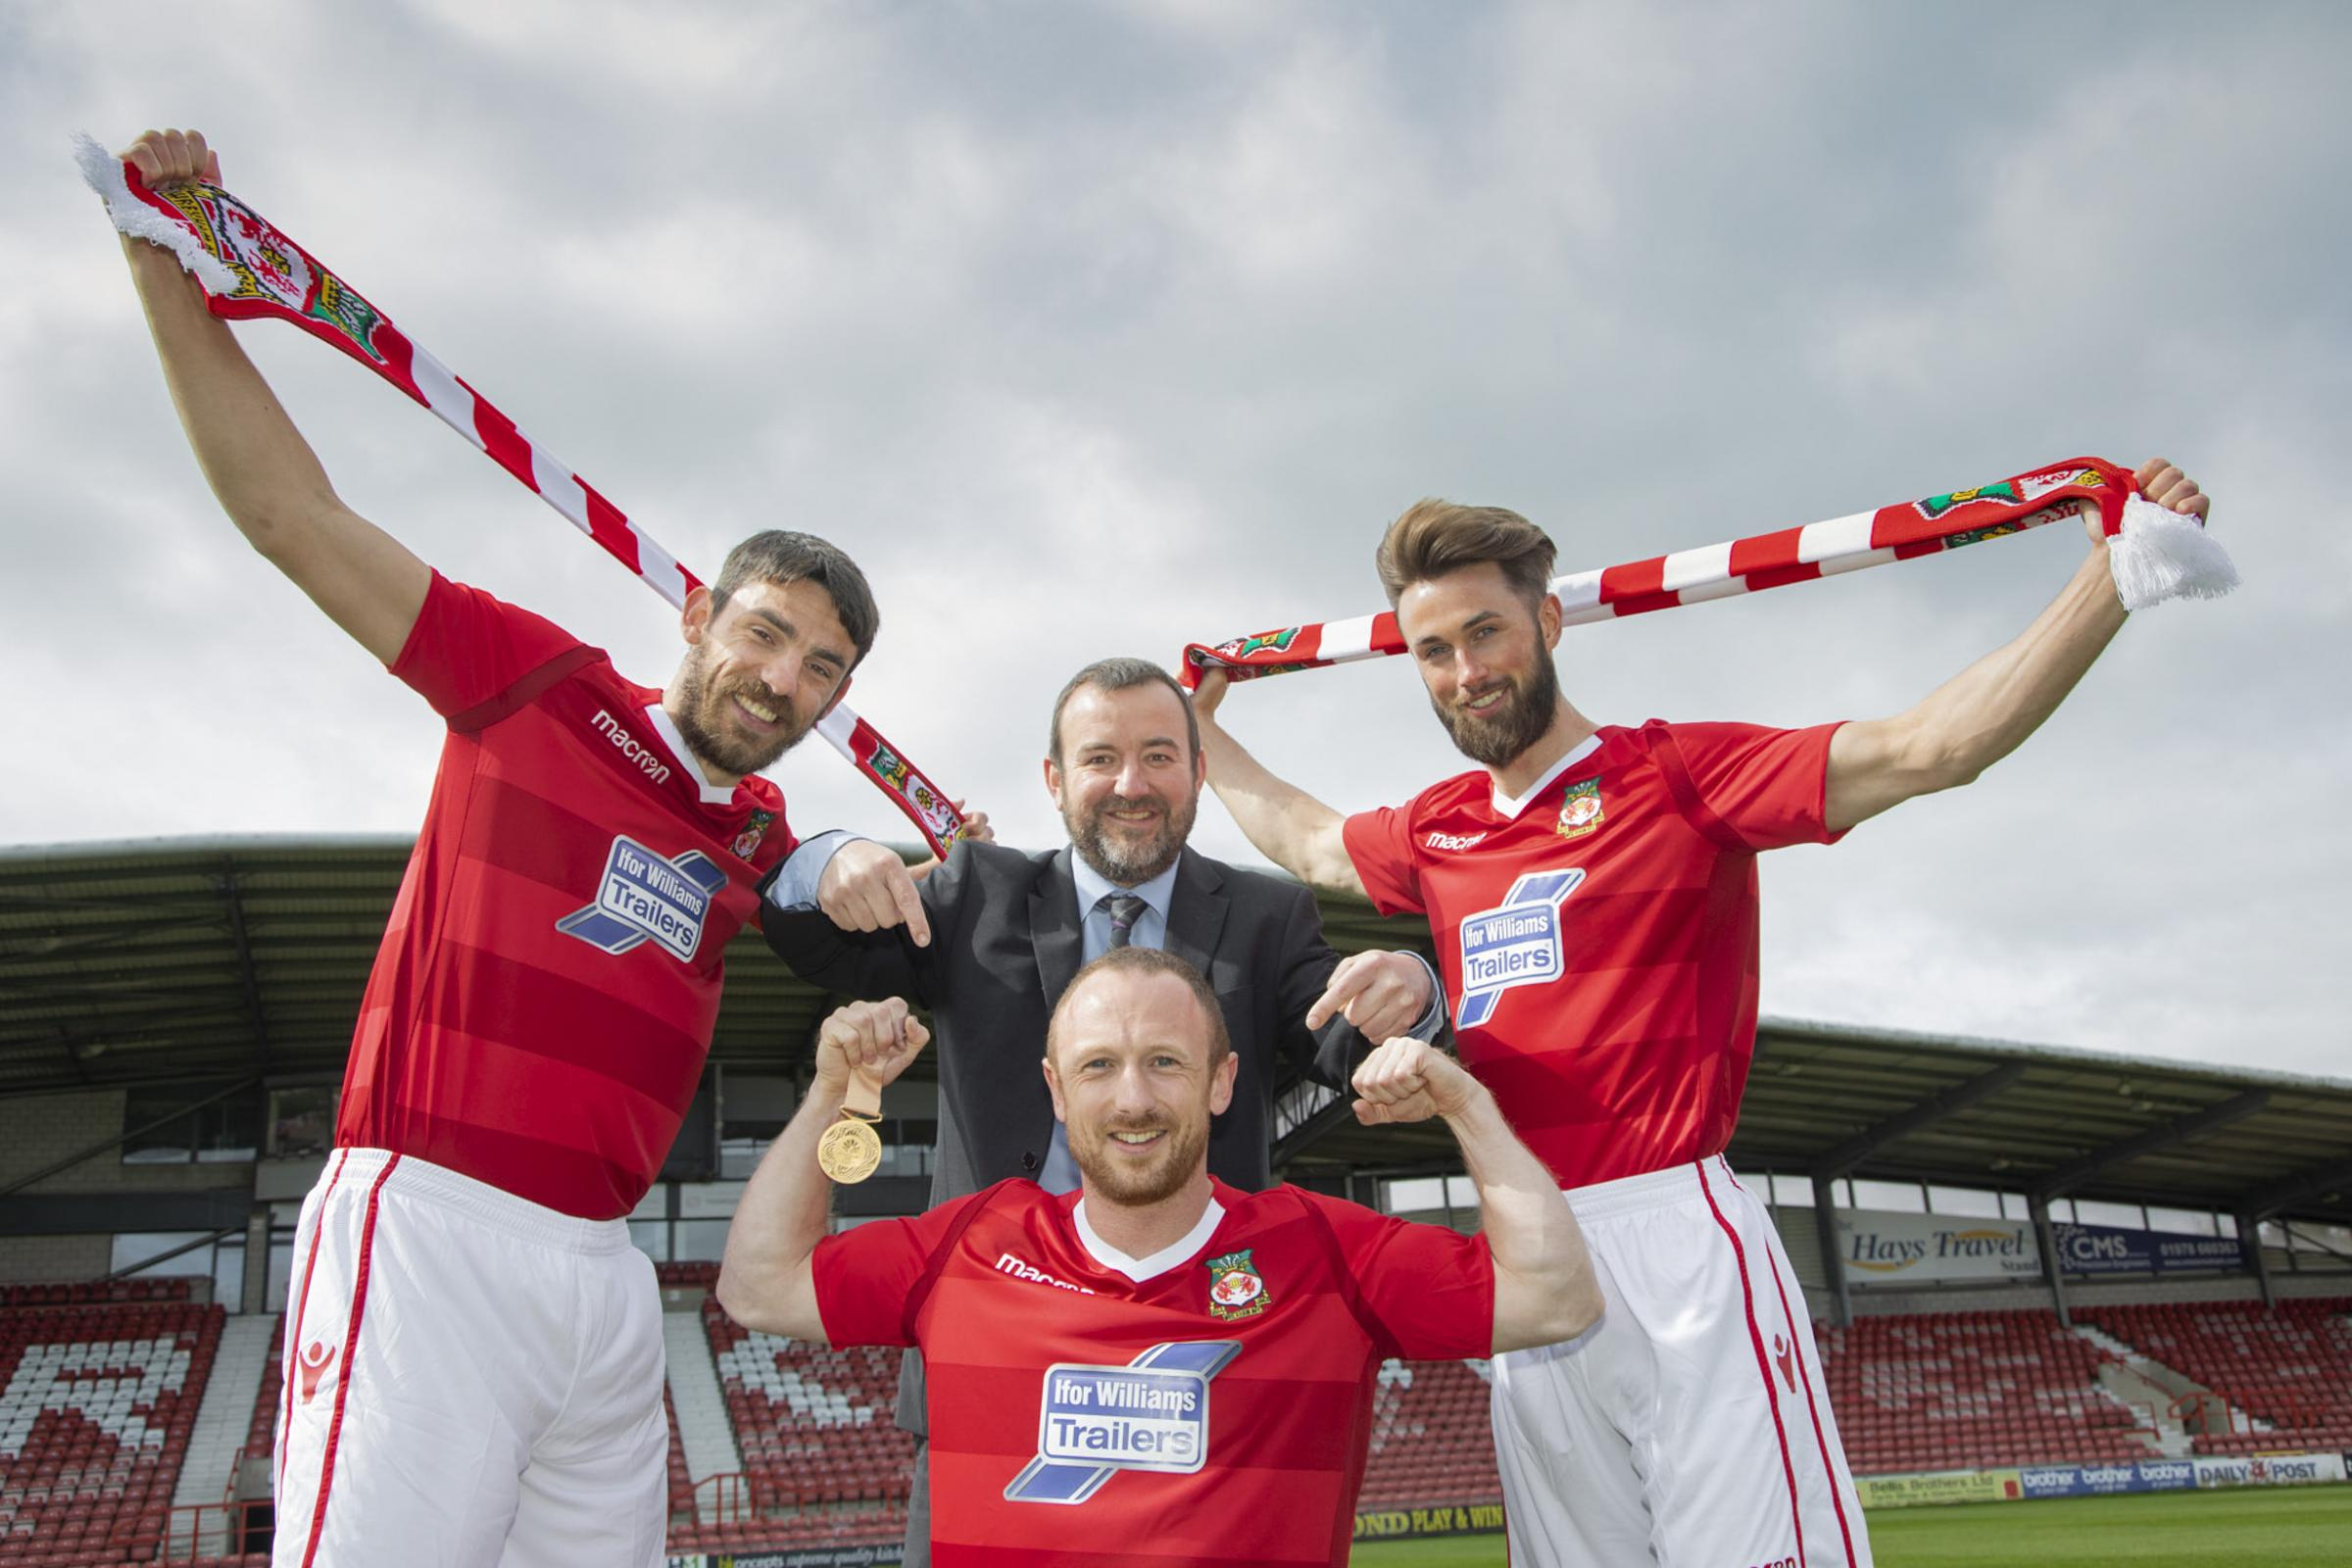 Pictured: Ifor Williams Trailers sponsor WFC.... Pictured  is Welsh weightlifter Gareth Evans with his gold Medal  and  ( L/R) WFC Player Shaun Pearson, Richard Hughes, HR Manager at IWT and WFC Player Chris Holroyd.